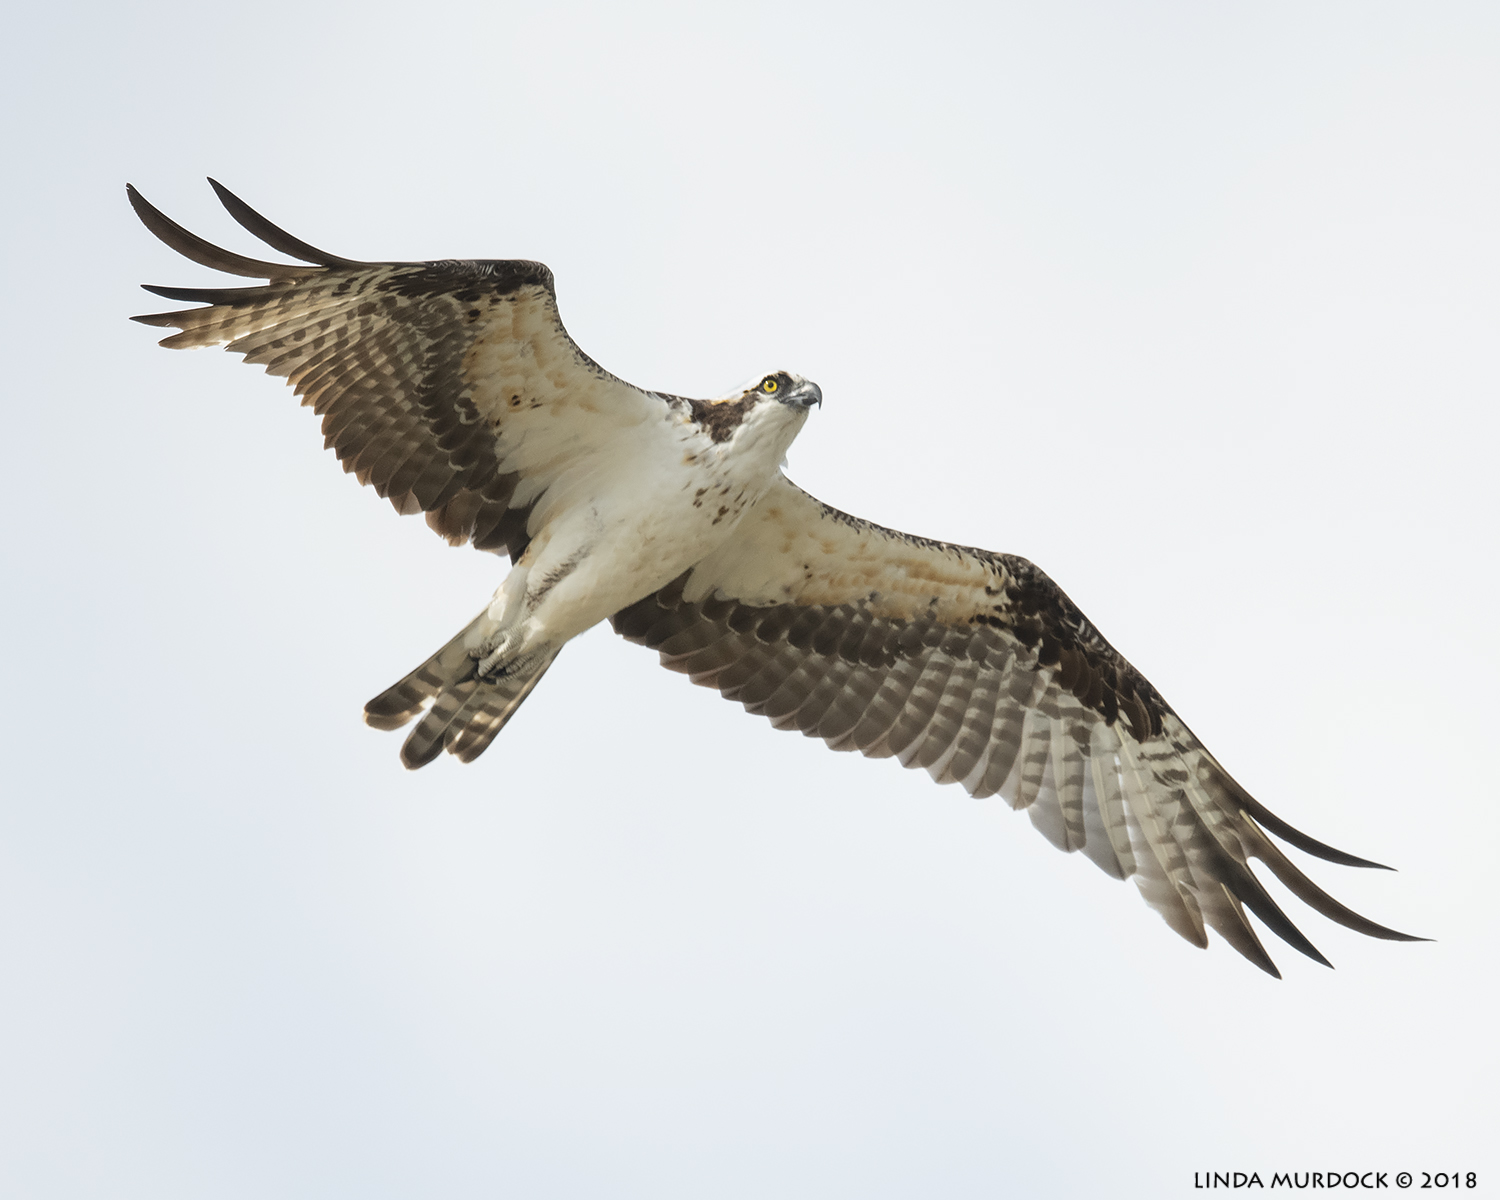 Osprey soars over my head  Nikon D850 with NIKKOR 500mm f/4E VR with Nikon 1.4x TC ~ 1/2500 sec f/5.6 ISO 1000; hand-held